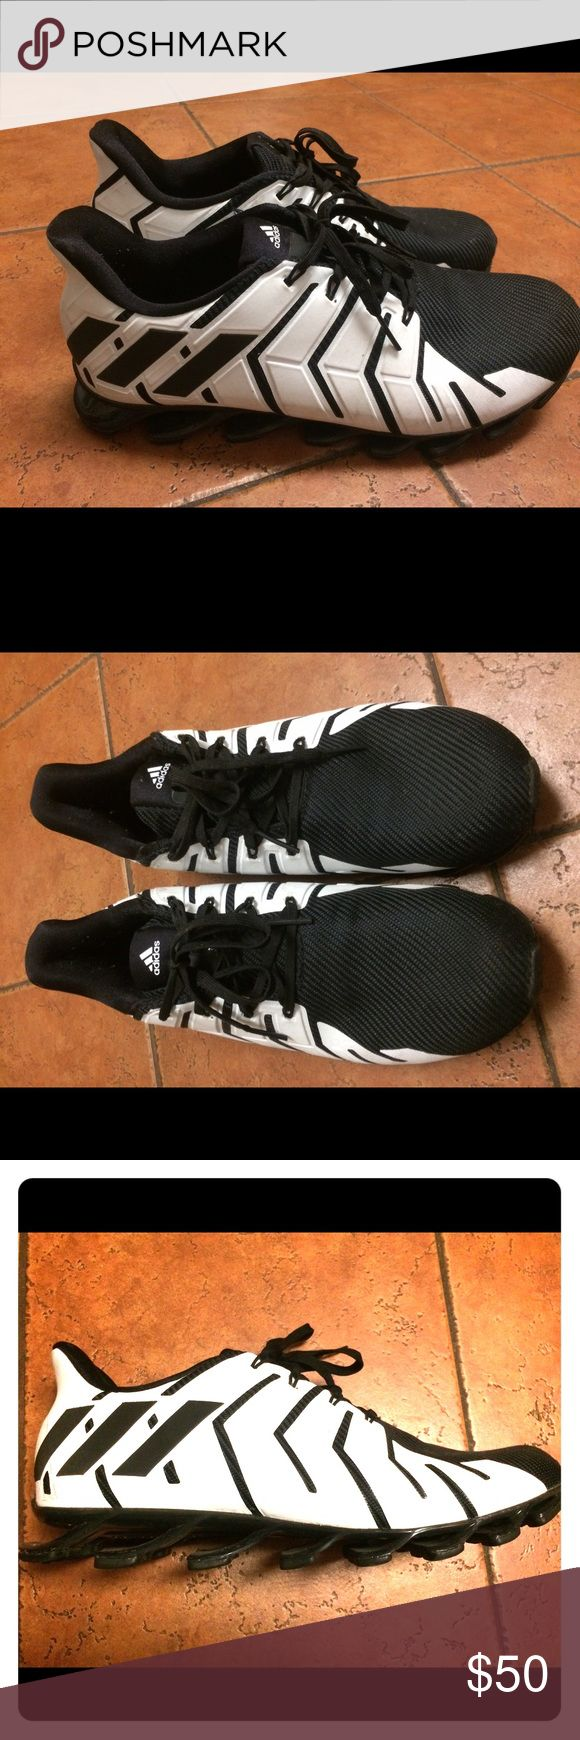 Adidas Springblade Black and White Men's Adidas Springblade sneakers. Size 11.5 ,Black and White. Perfect condition, worn only a couple of times. Extraordinarily comfortable. Shoes Sneakers